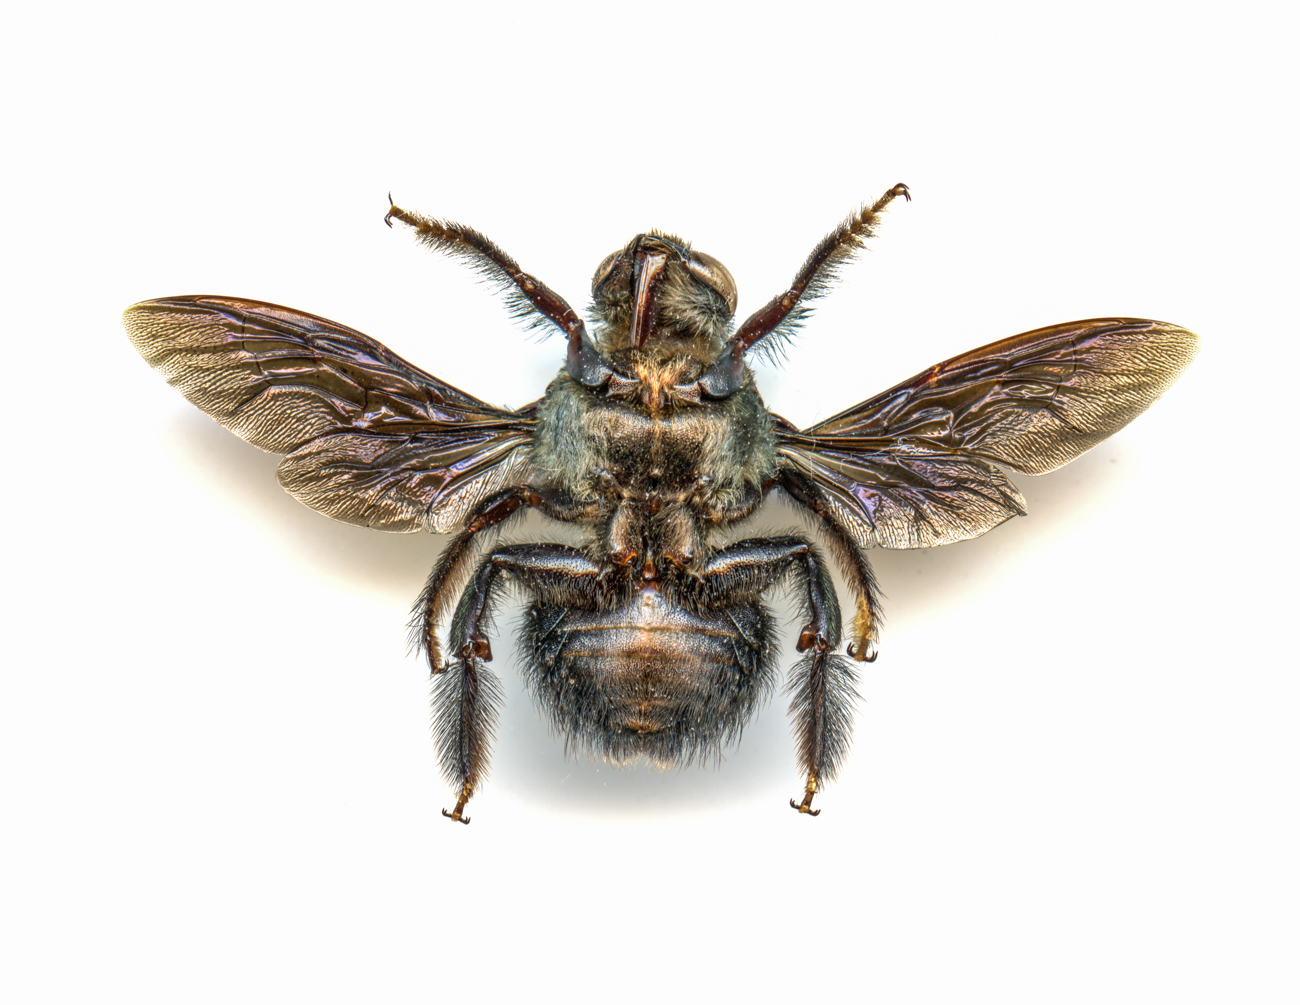 Blue Carpenter Bee / Image: Catherine Viox // Published: 4.12.20